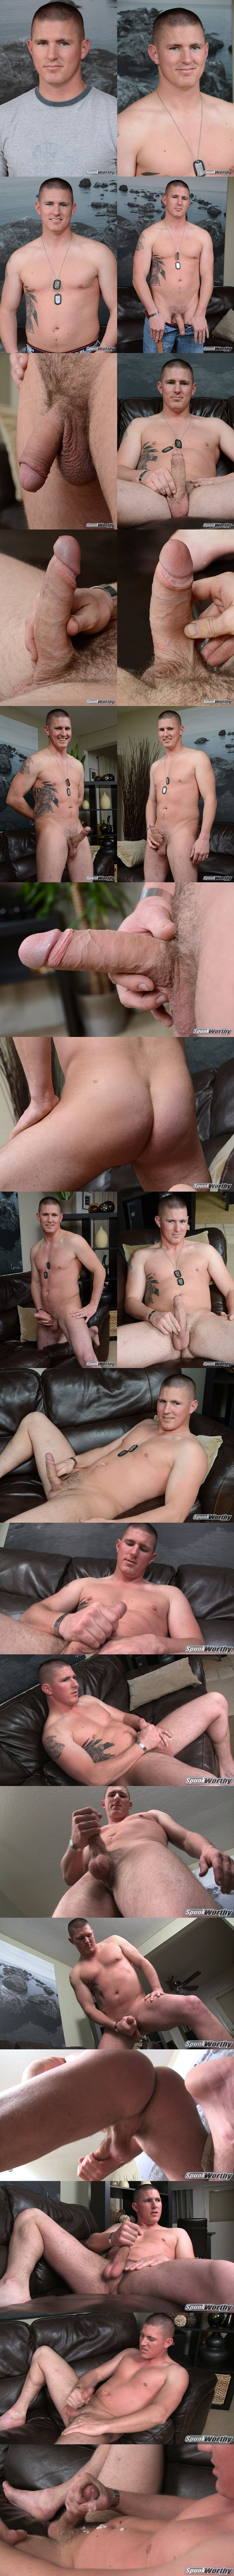 Sexy Straight Marine uncut big-dicked Eli dumps a creamy load in his porn debut at Spunkworthy 01